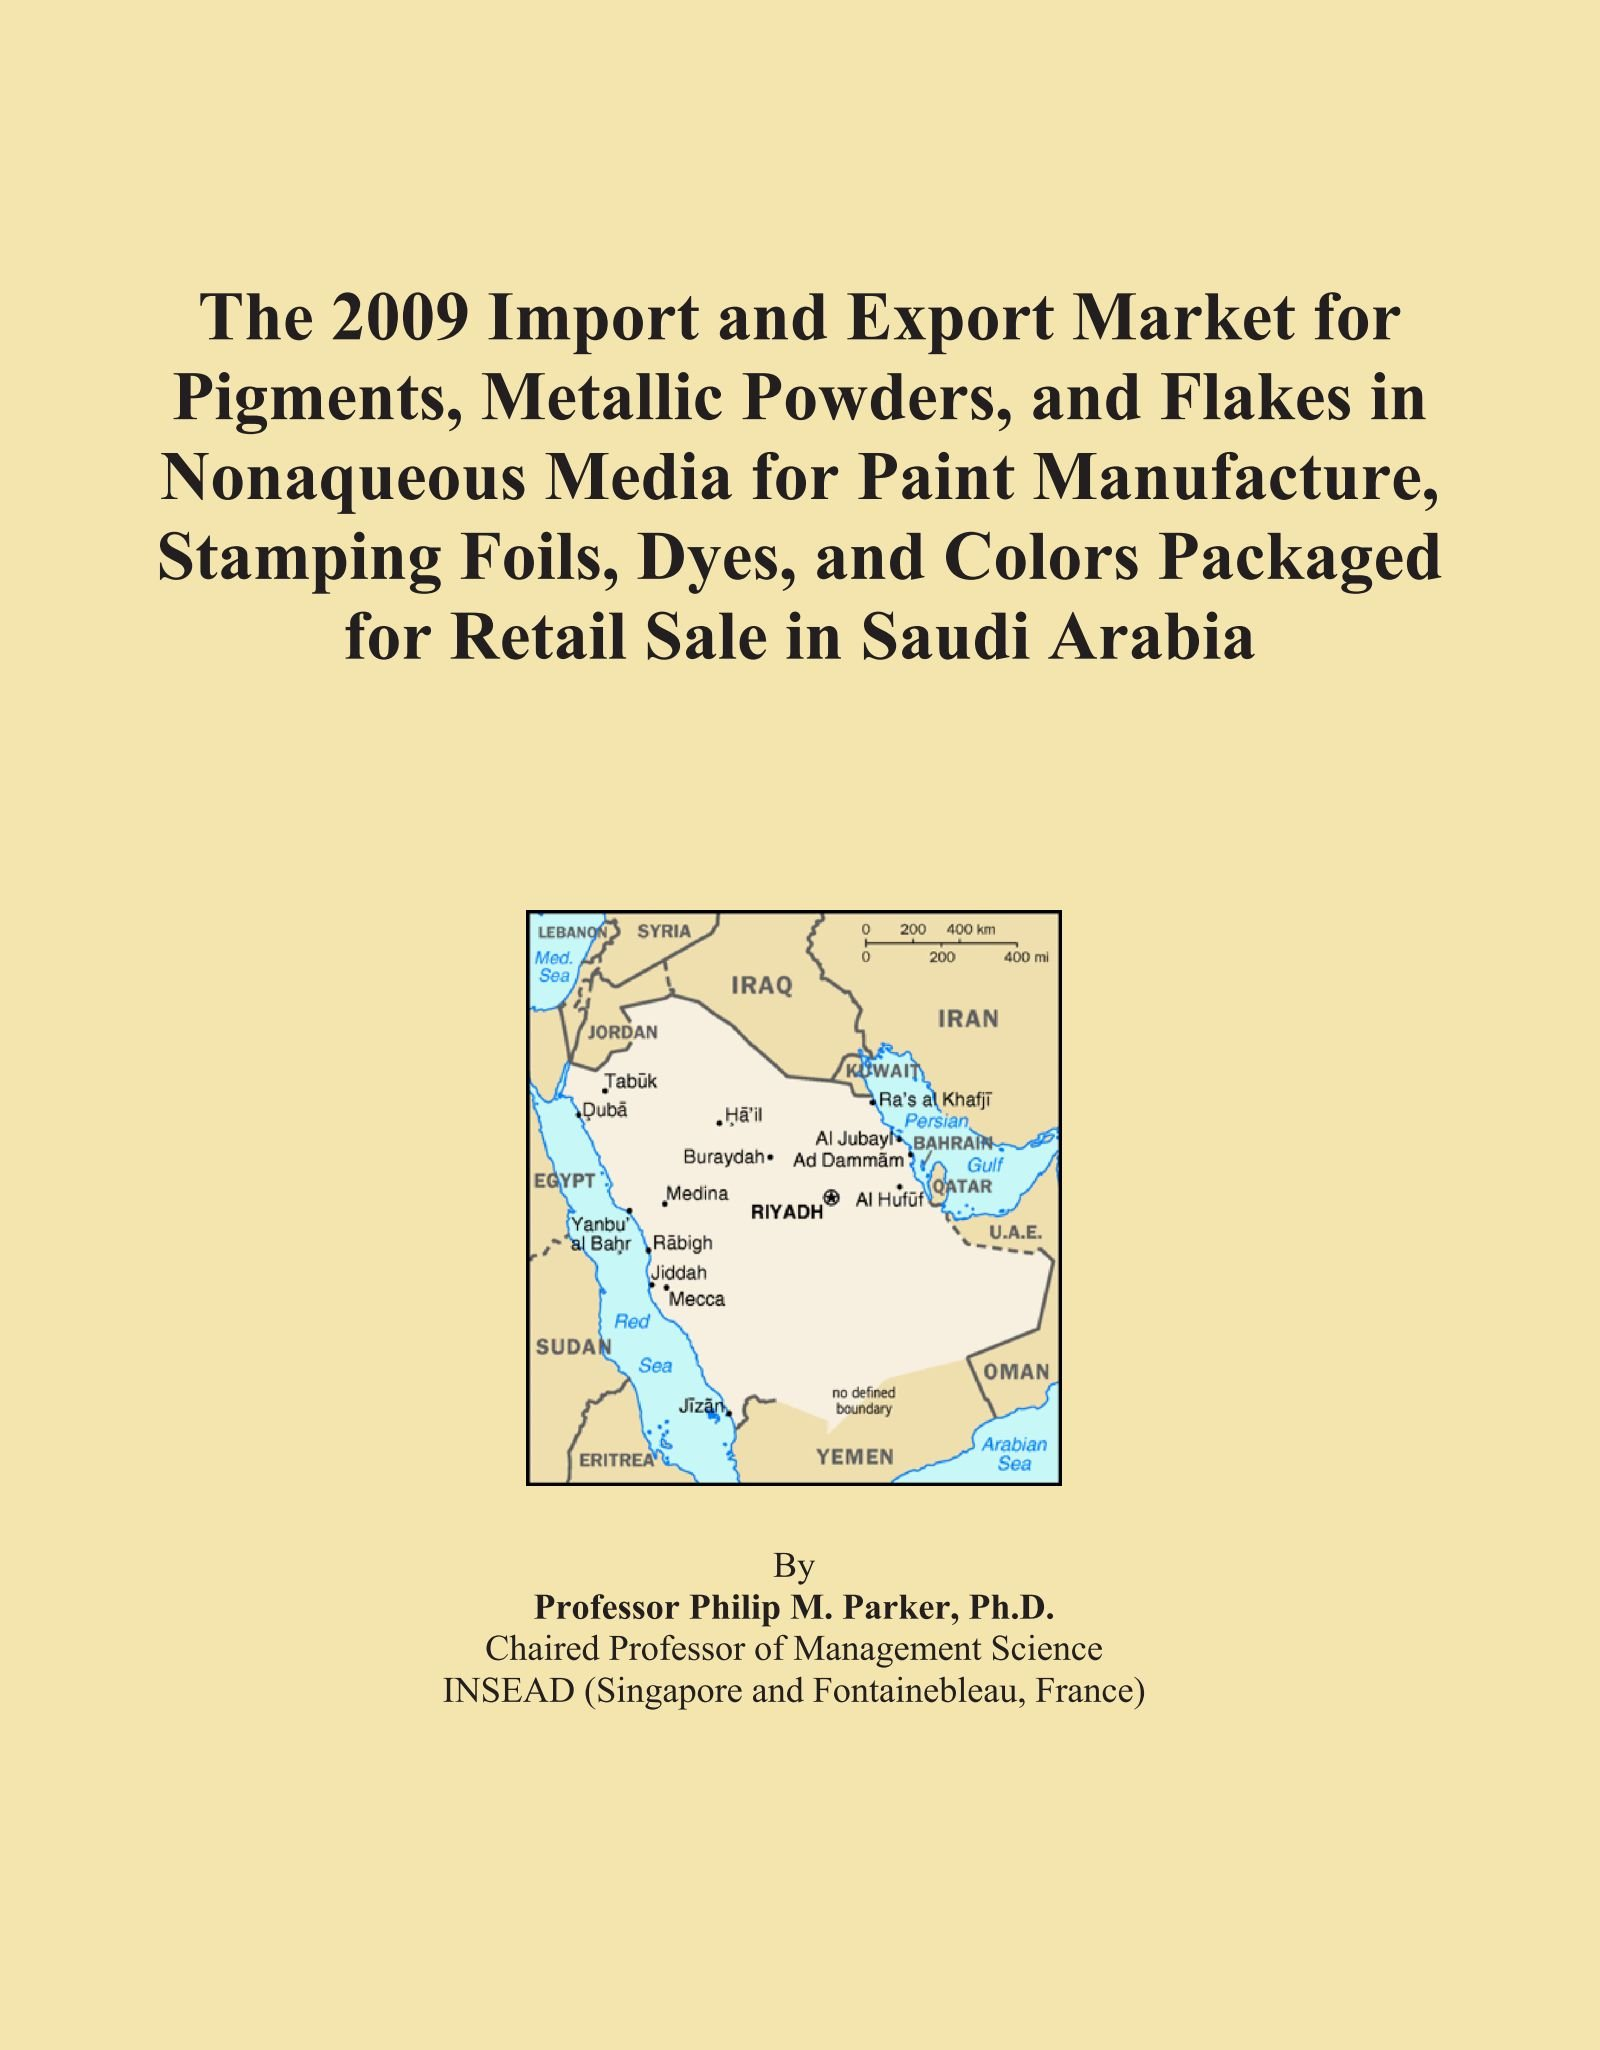 The 2009 Import and Export Market for Pigments, Metallic Powders, and Flakes in Nonaqueous Media for Paint Manufacture, Stamping Foils, Dyes, and Colors Packaged for Retail Sale in Saudi Arabia pdf